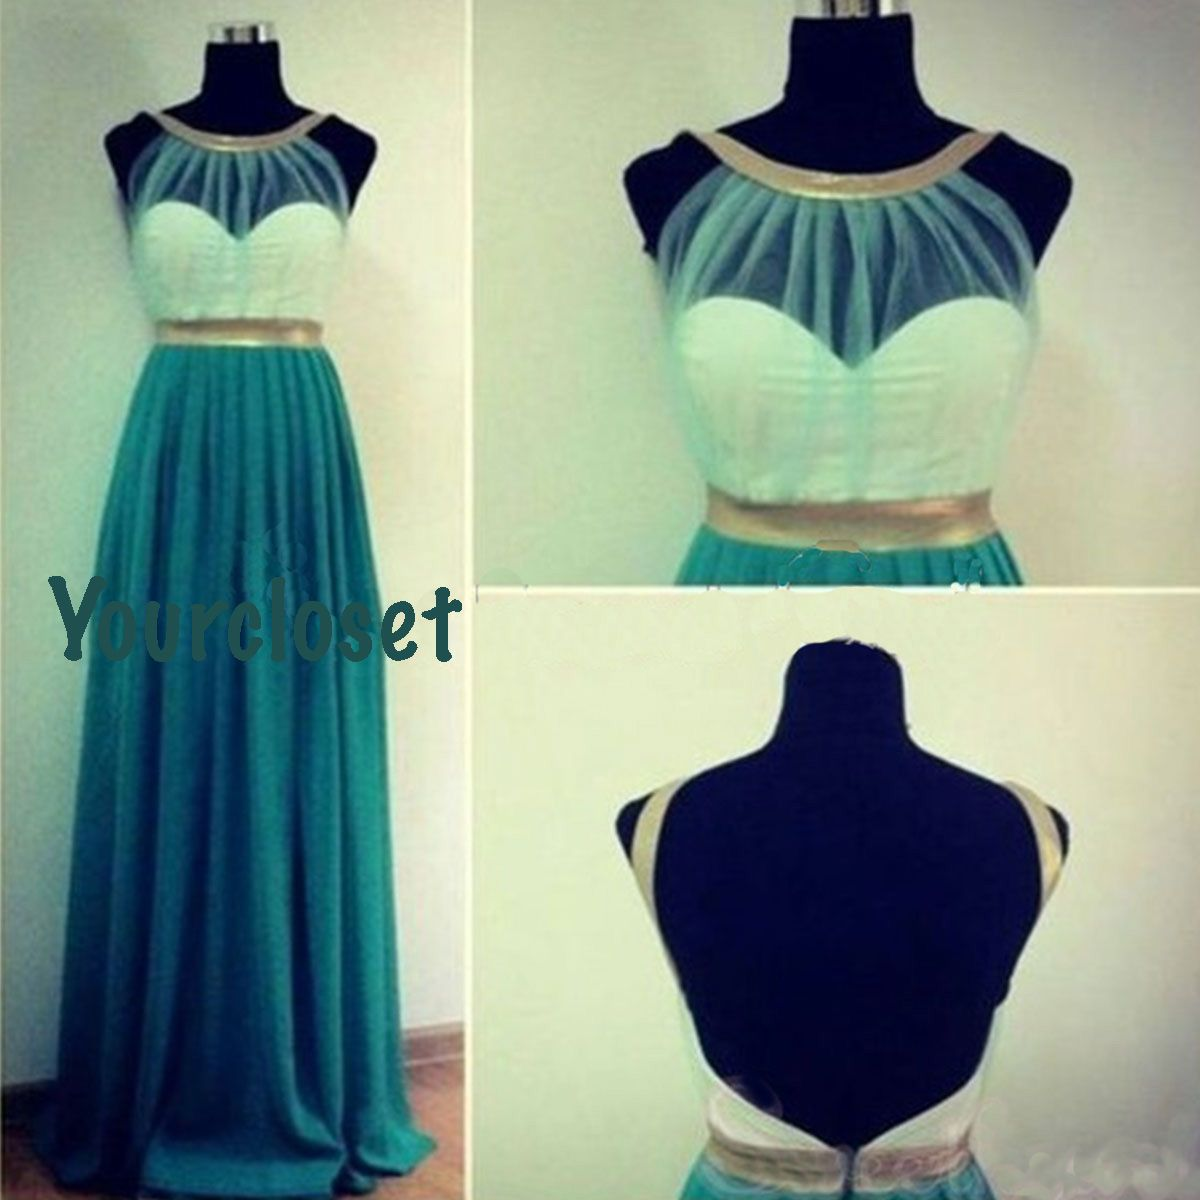 Each of our dress are made to order by hand dress codeg fabric